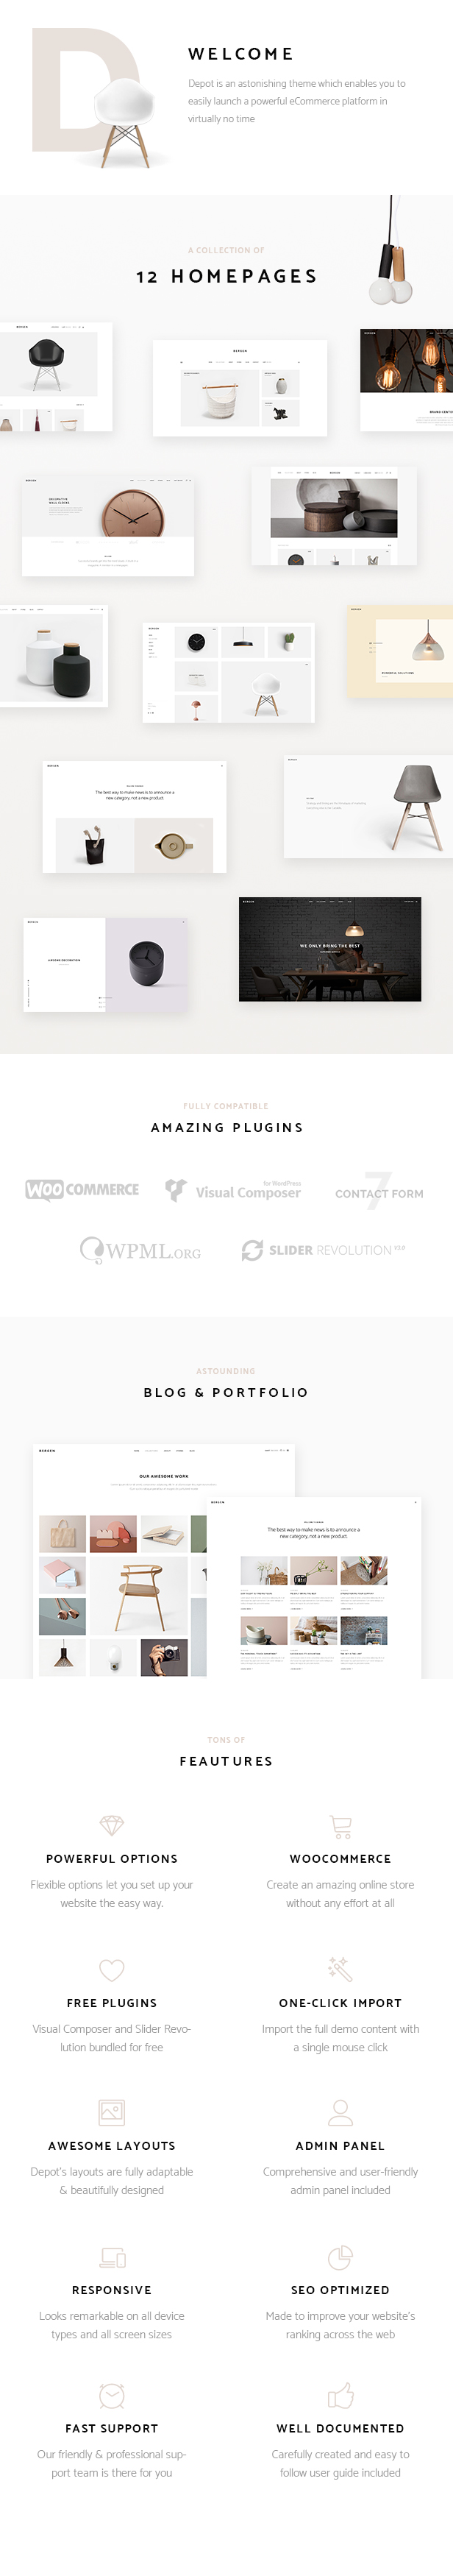 Depot - A Contemporary Theme for eCommerce - 1